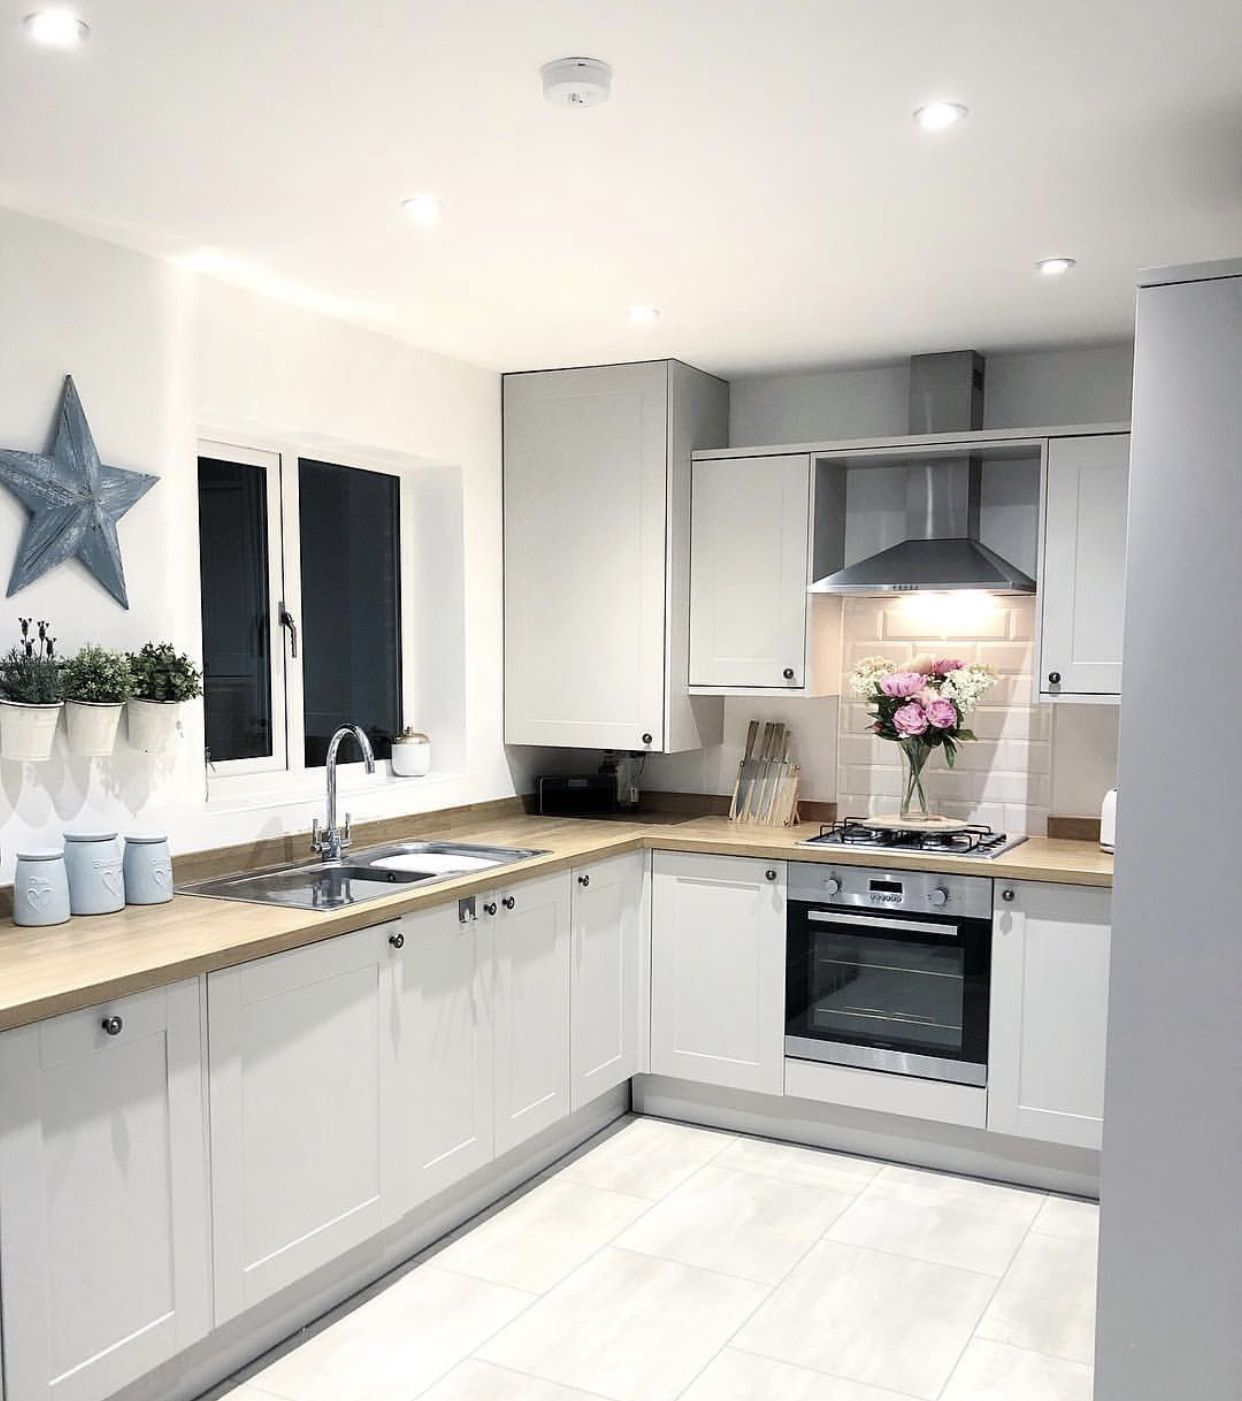 Find Cool L Shaped Kitchen Design For Your Home Now Open Plan Kitchen Dining Living Open Plan Kitchen Living Room Kitchen Dining Living